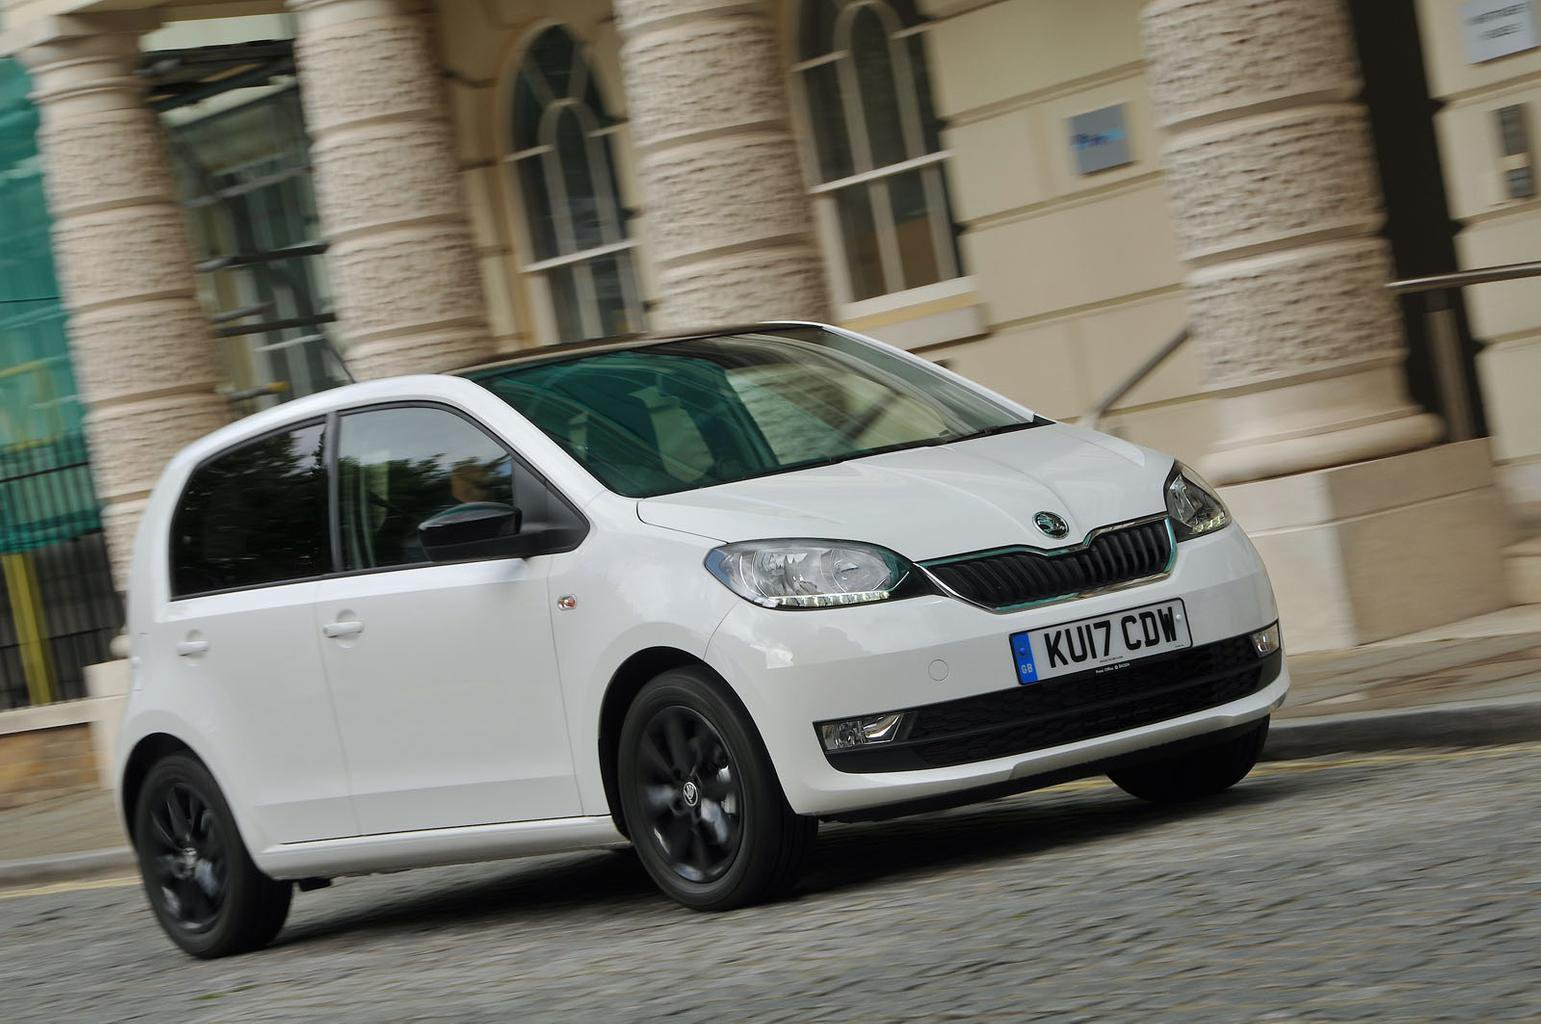 Best cars for less than £150 per month